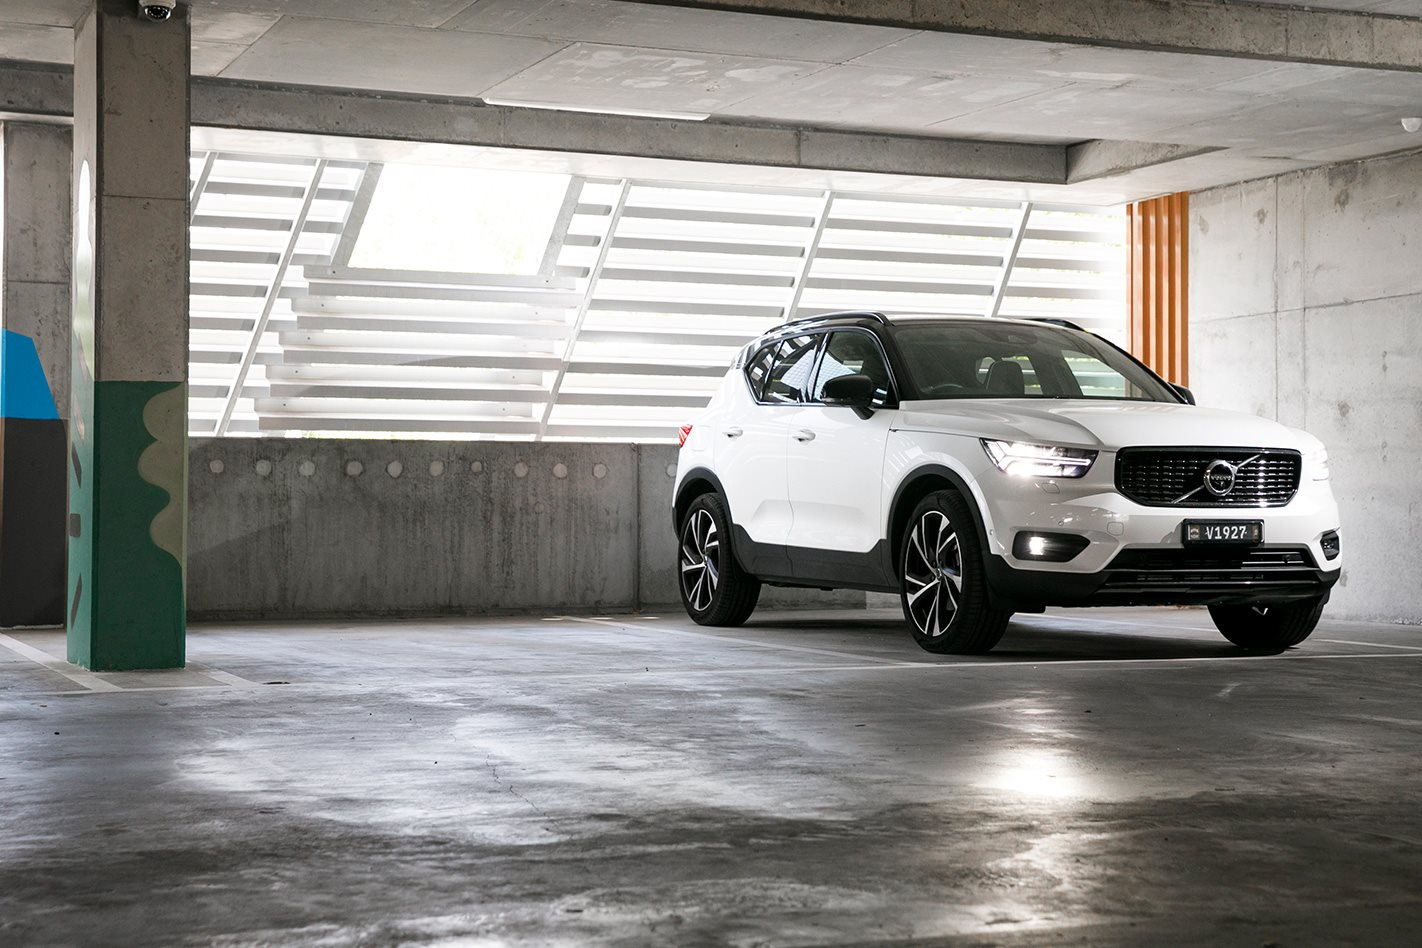 2019 Volvo XC40 T5 long-term review, part one